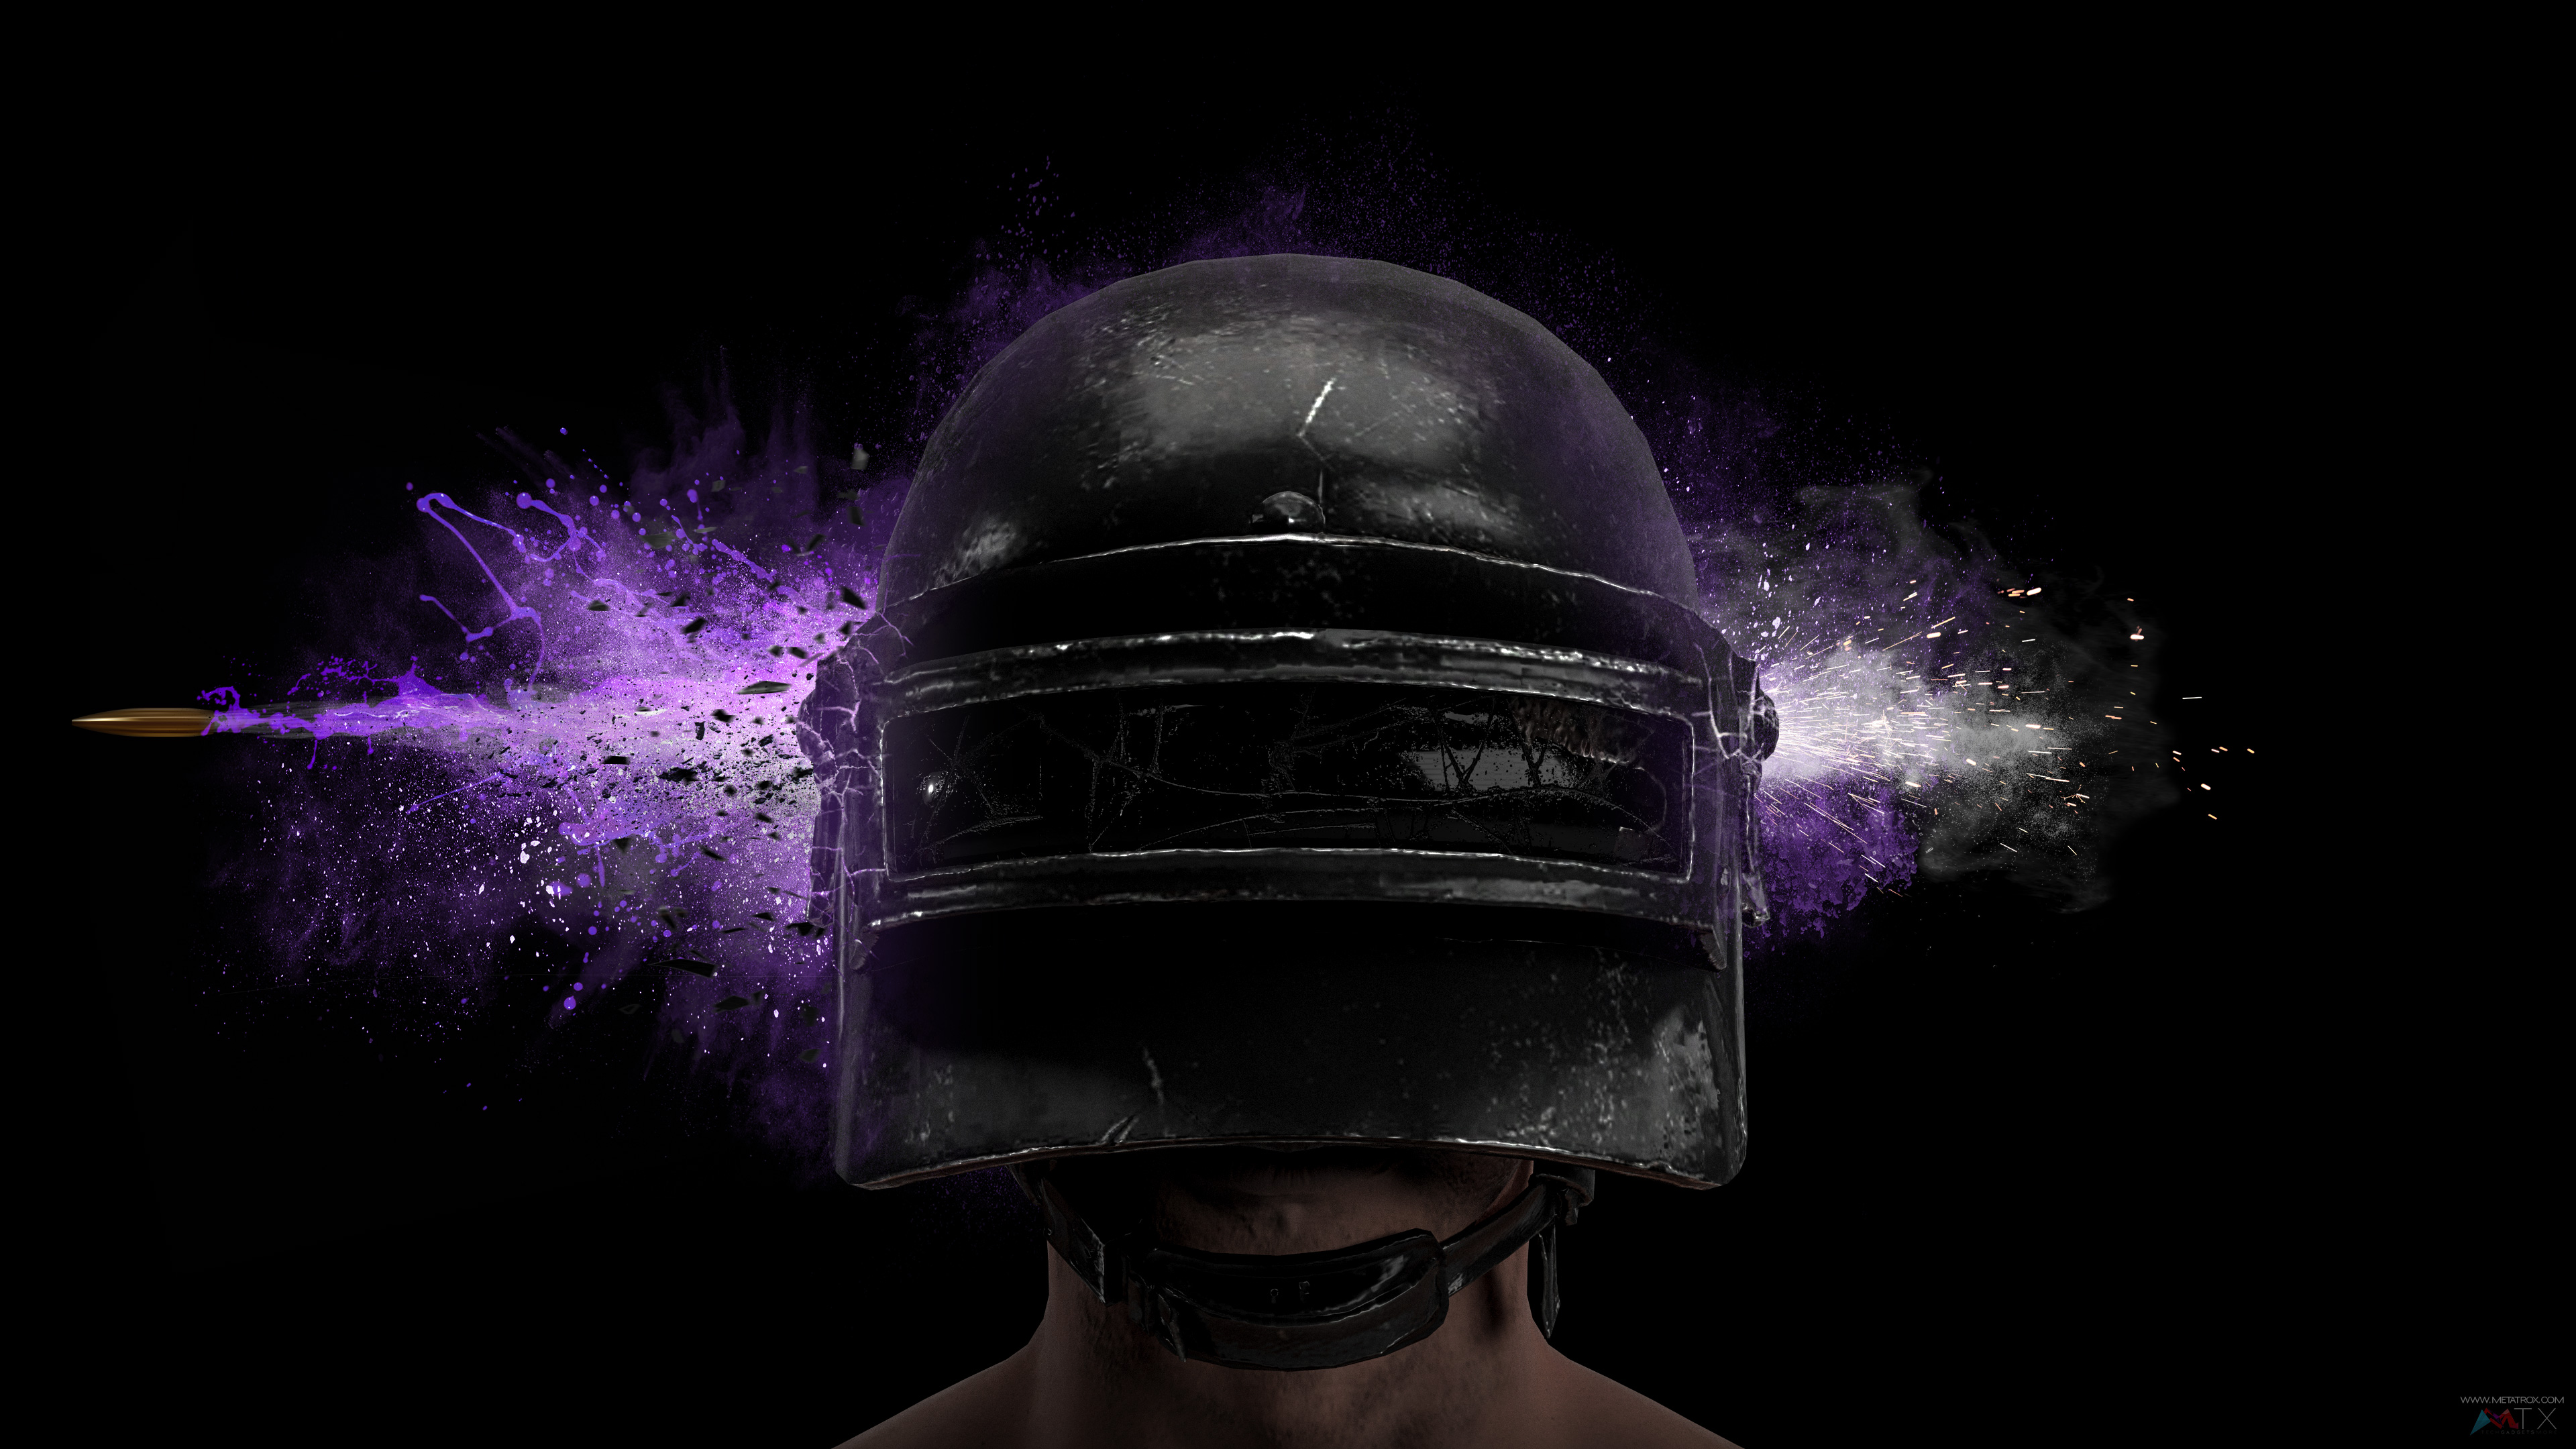 Pubg Wallpapers Hd Mobile: 3840x2160 PUBG Game Helmet Guy 4k 4k HD 4k Wallpapers